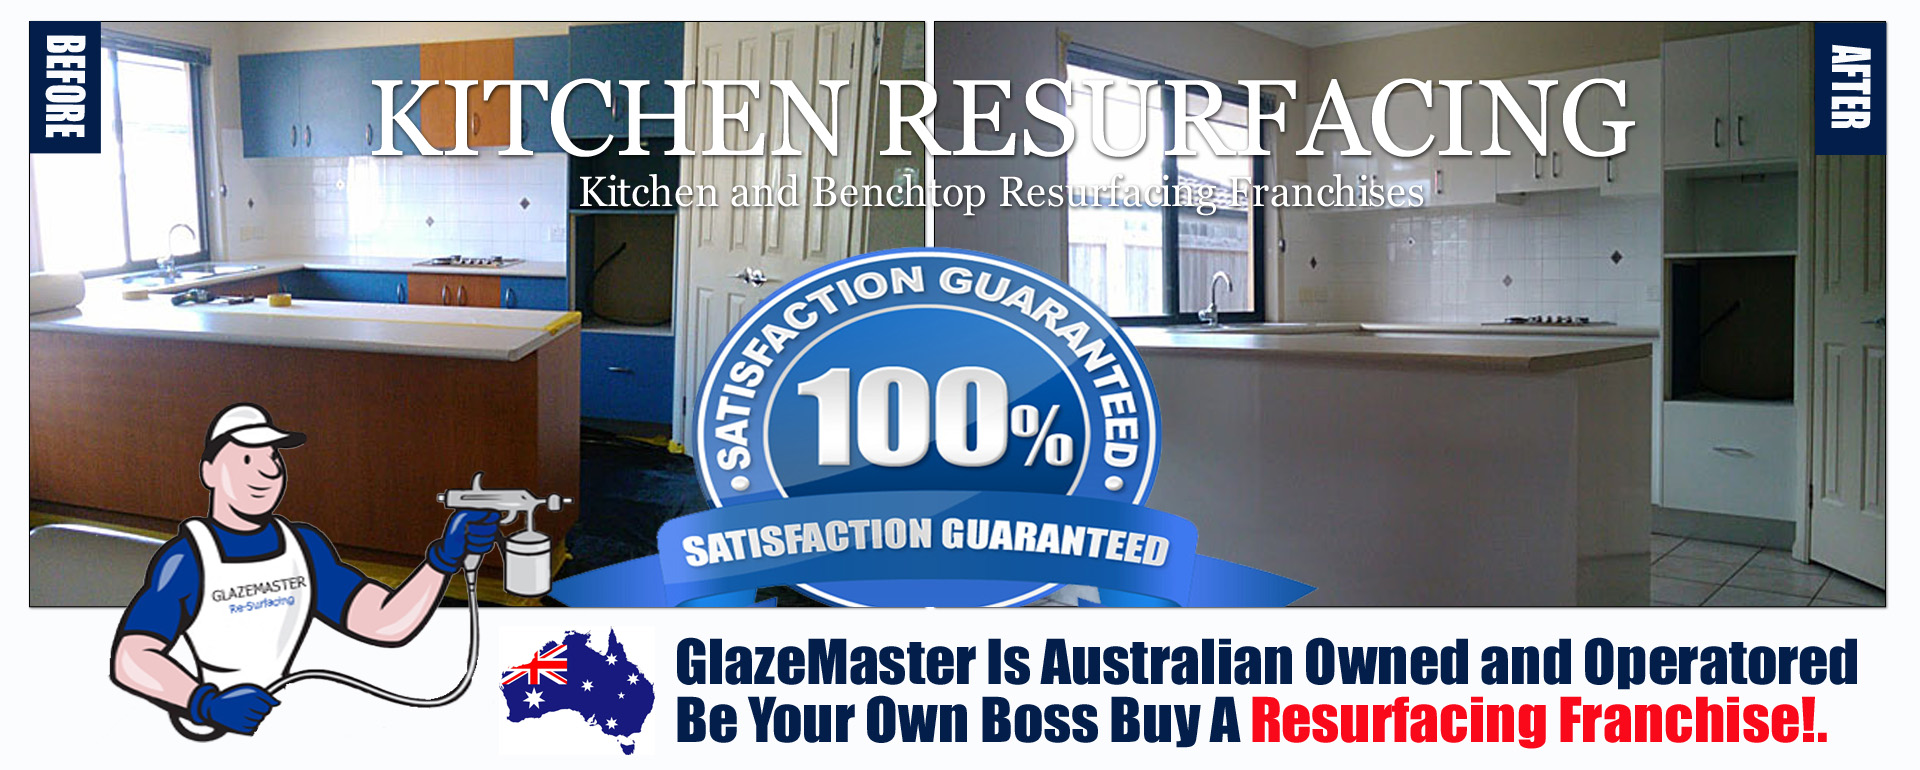 Kitchen Resurfacing Franchises